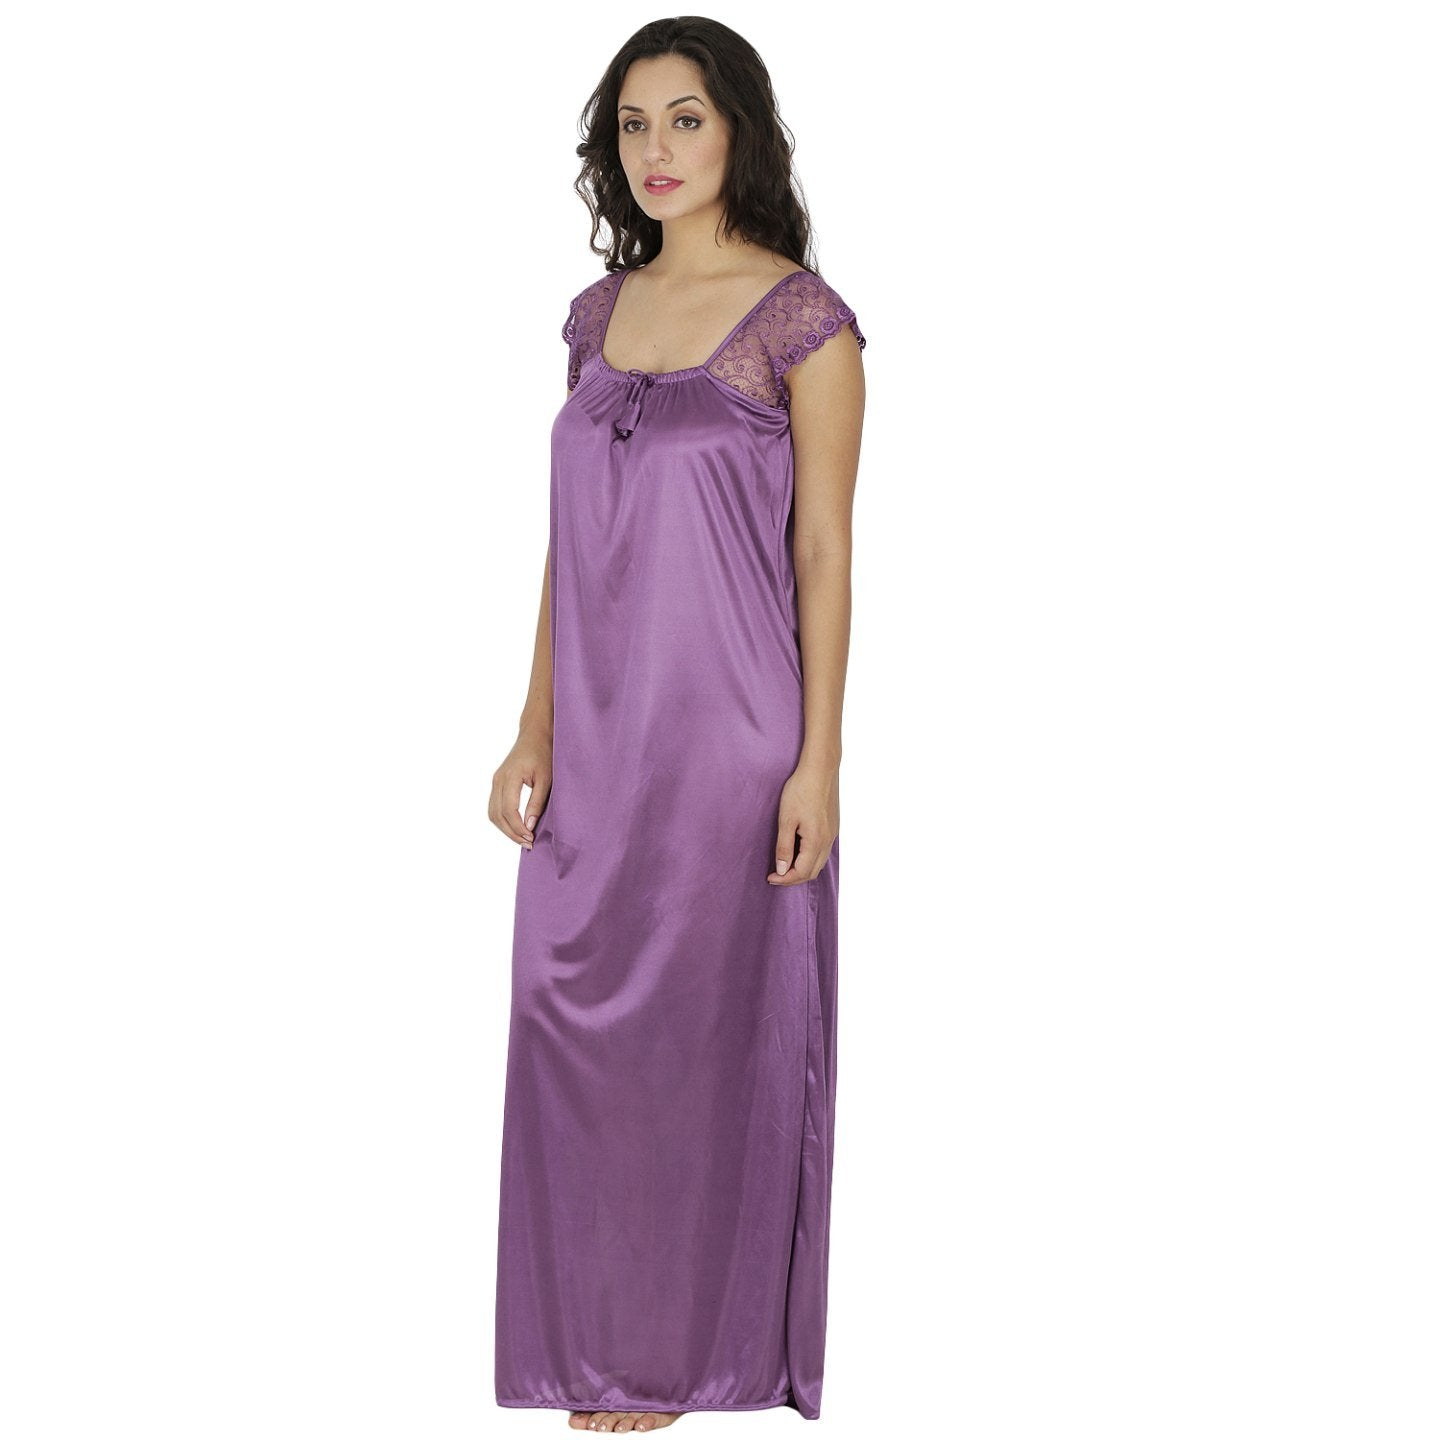 Klamotten Women's Satin Nightdress X48_SPrpl